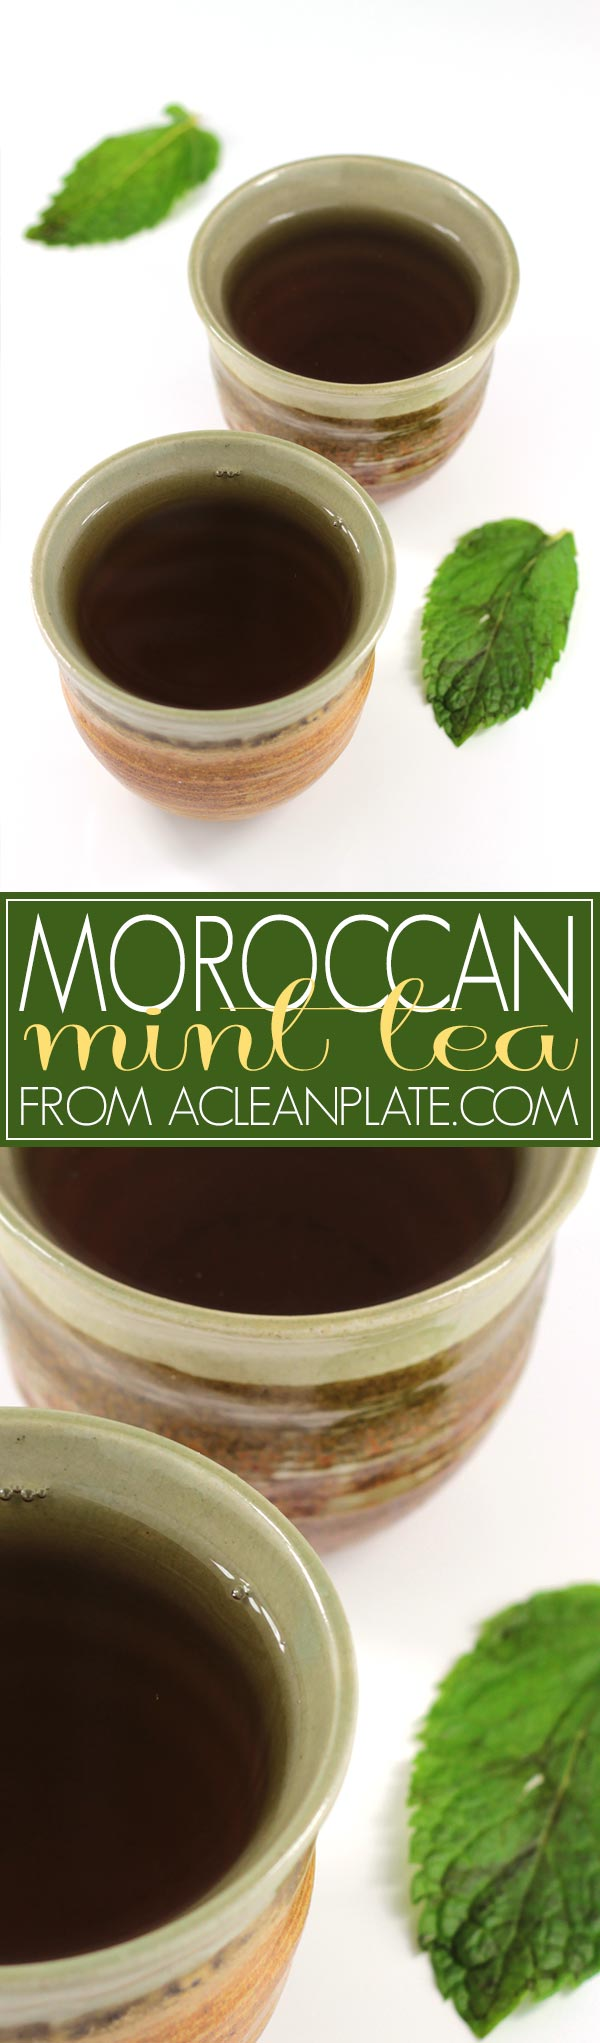 Moroccan Mint Tea recipe from acleanplate.com